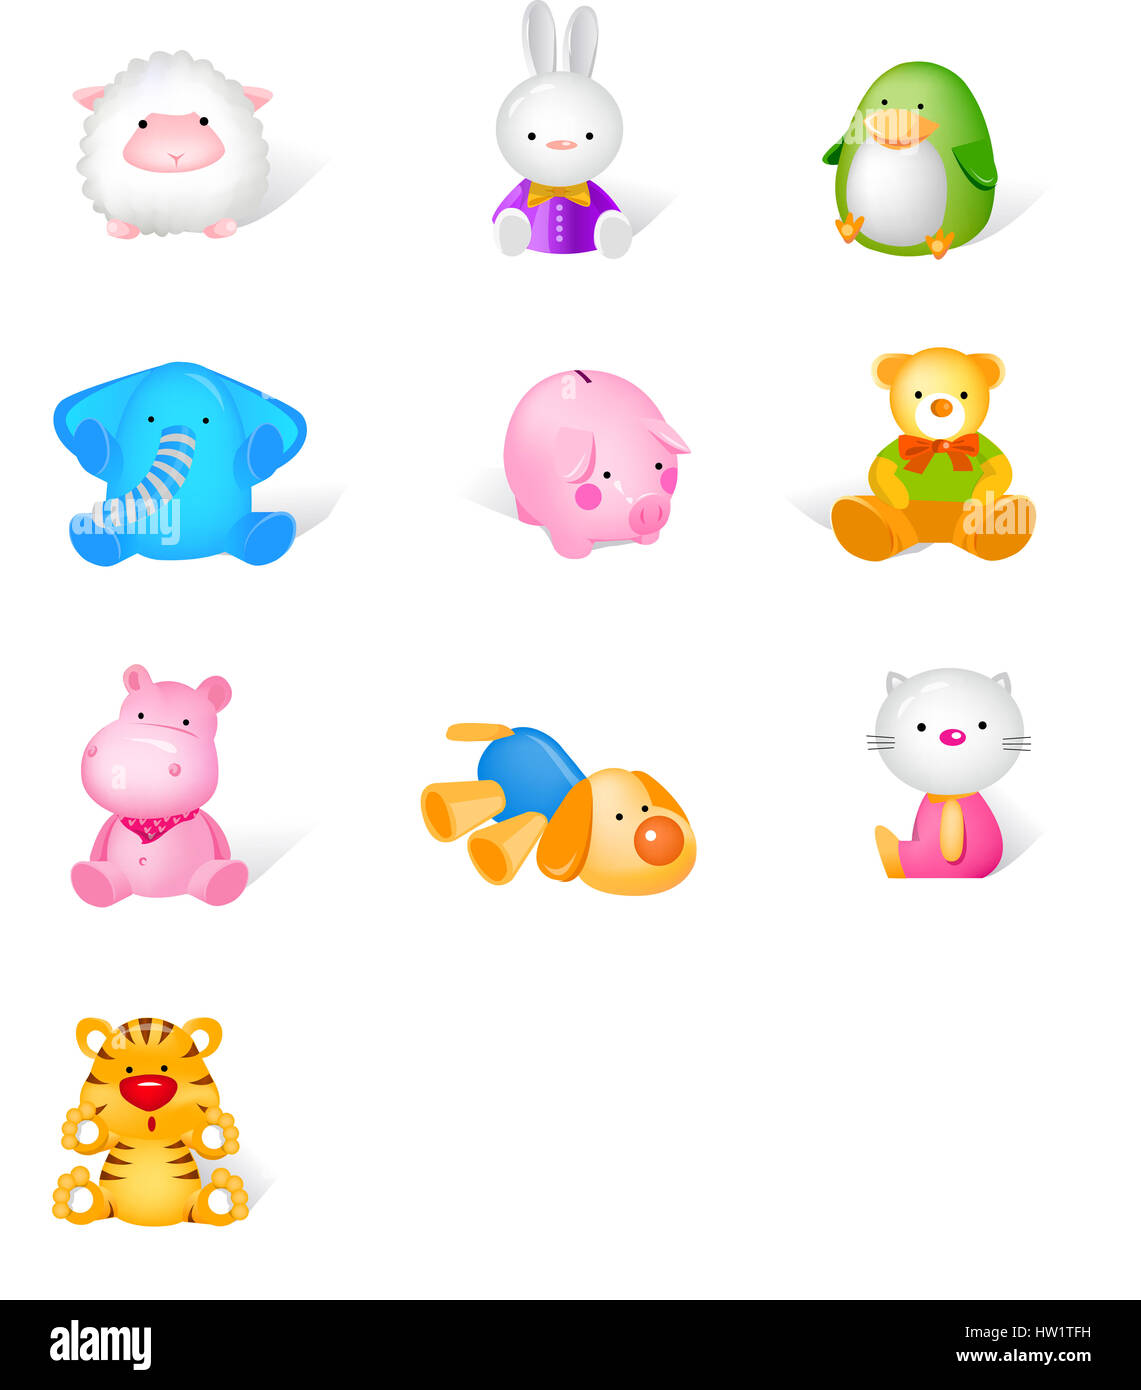 hight resolution of bear cart cat childhood clip art clipart color colour color image computer graphics computer icon craft digitally generated image dog elephant fun graphics